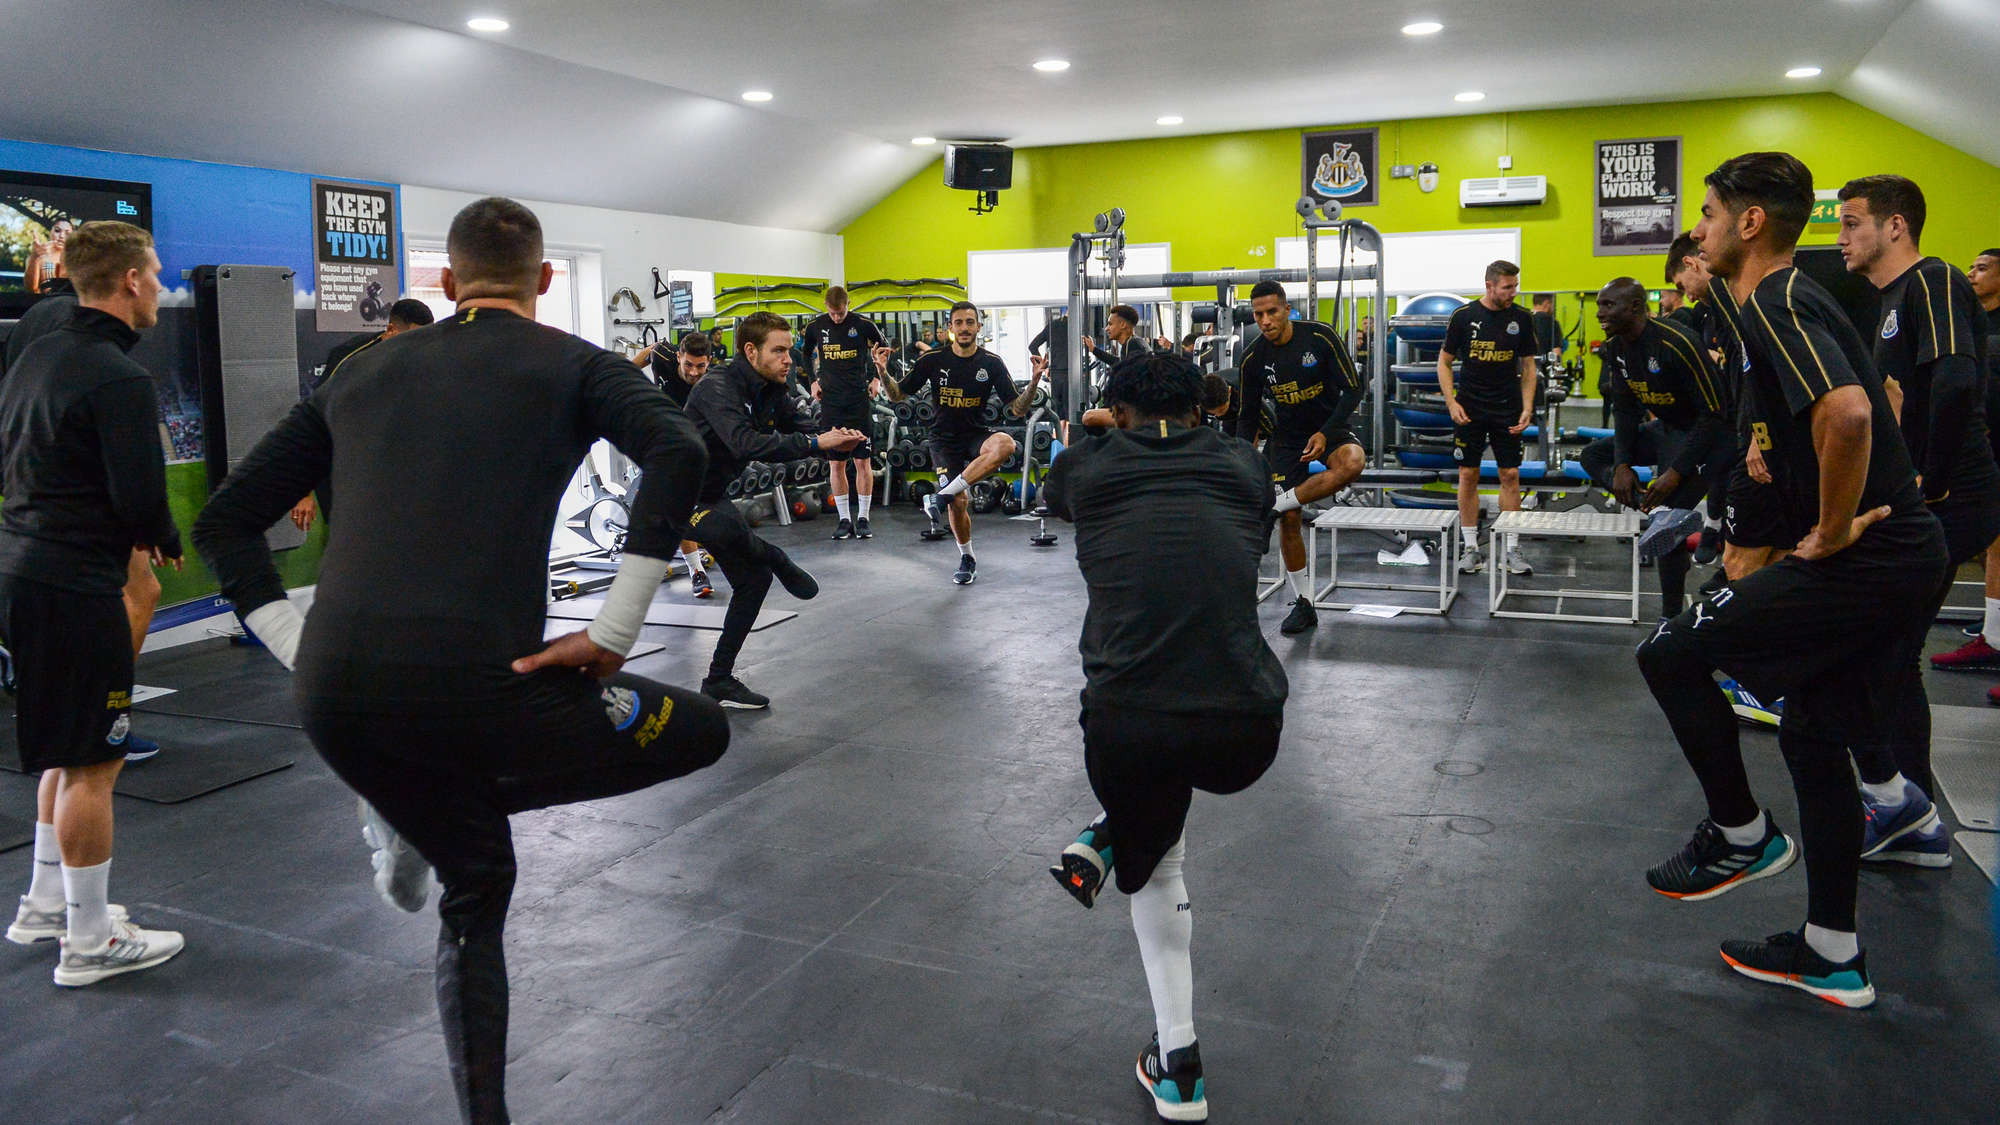 Concerning Pictures Emerge From The Club S Training Ground Has Nufc Star Suffered Setback Nufc Blog Newcastle United Blog Nufc Fixtures News And Forum